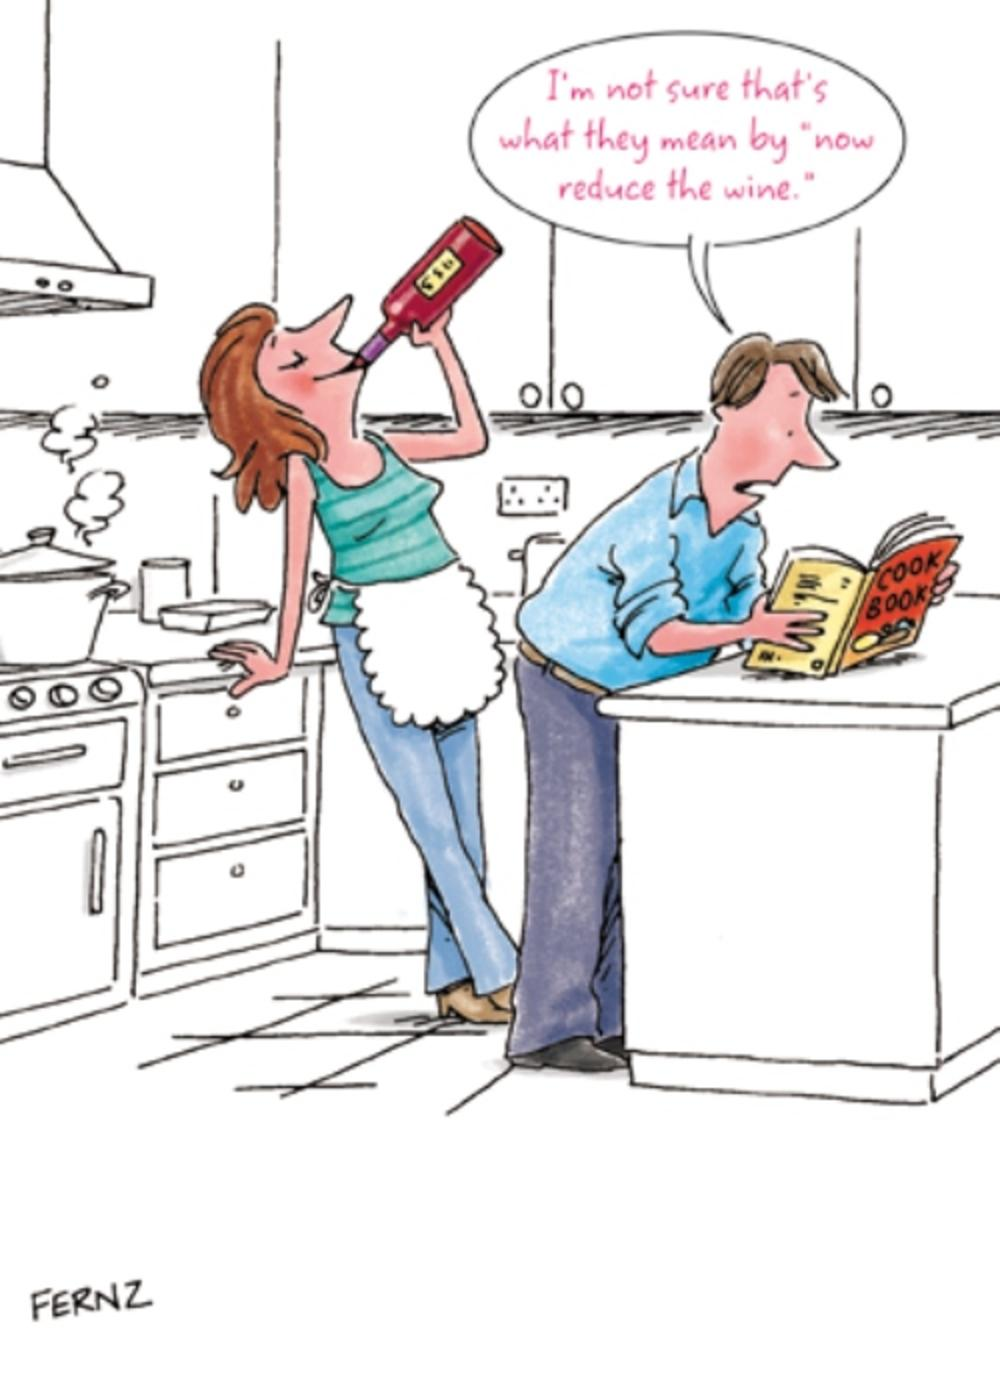 Fernz Funny Reduce The Wine Mother's Day Humour Greeting Card